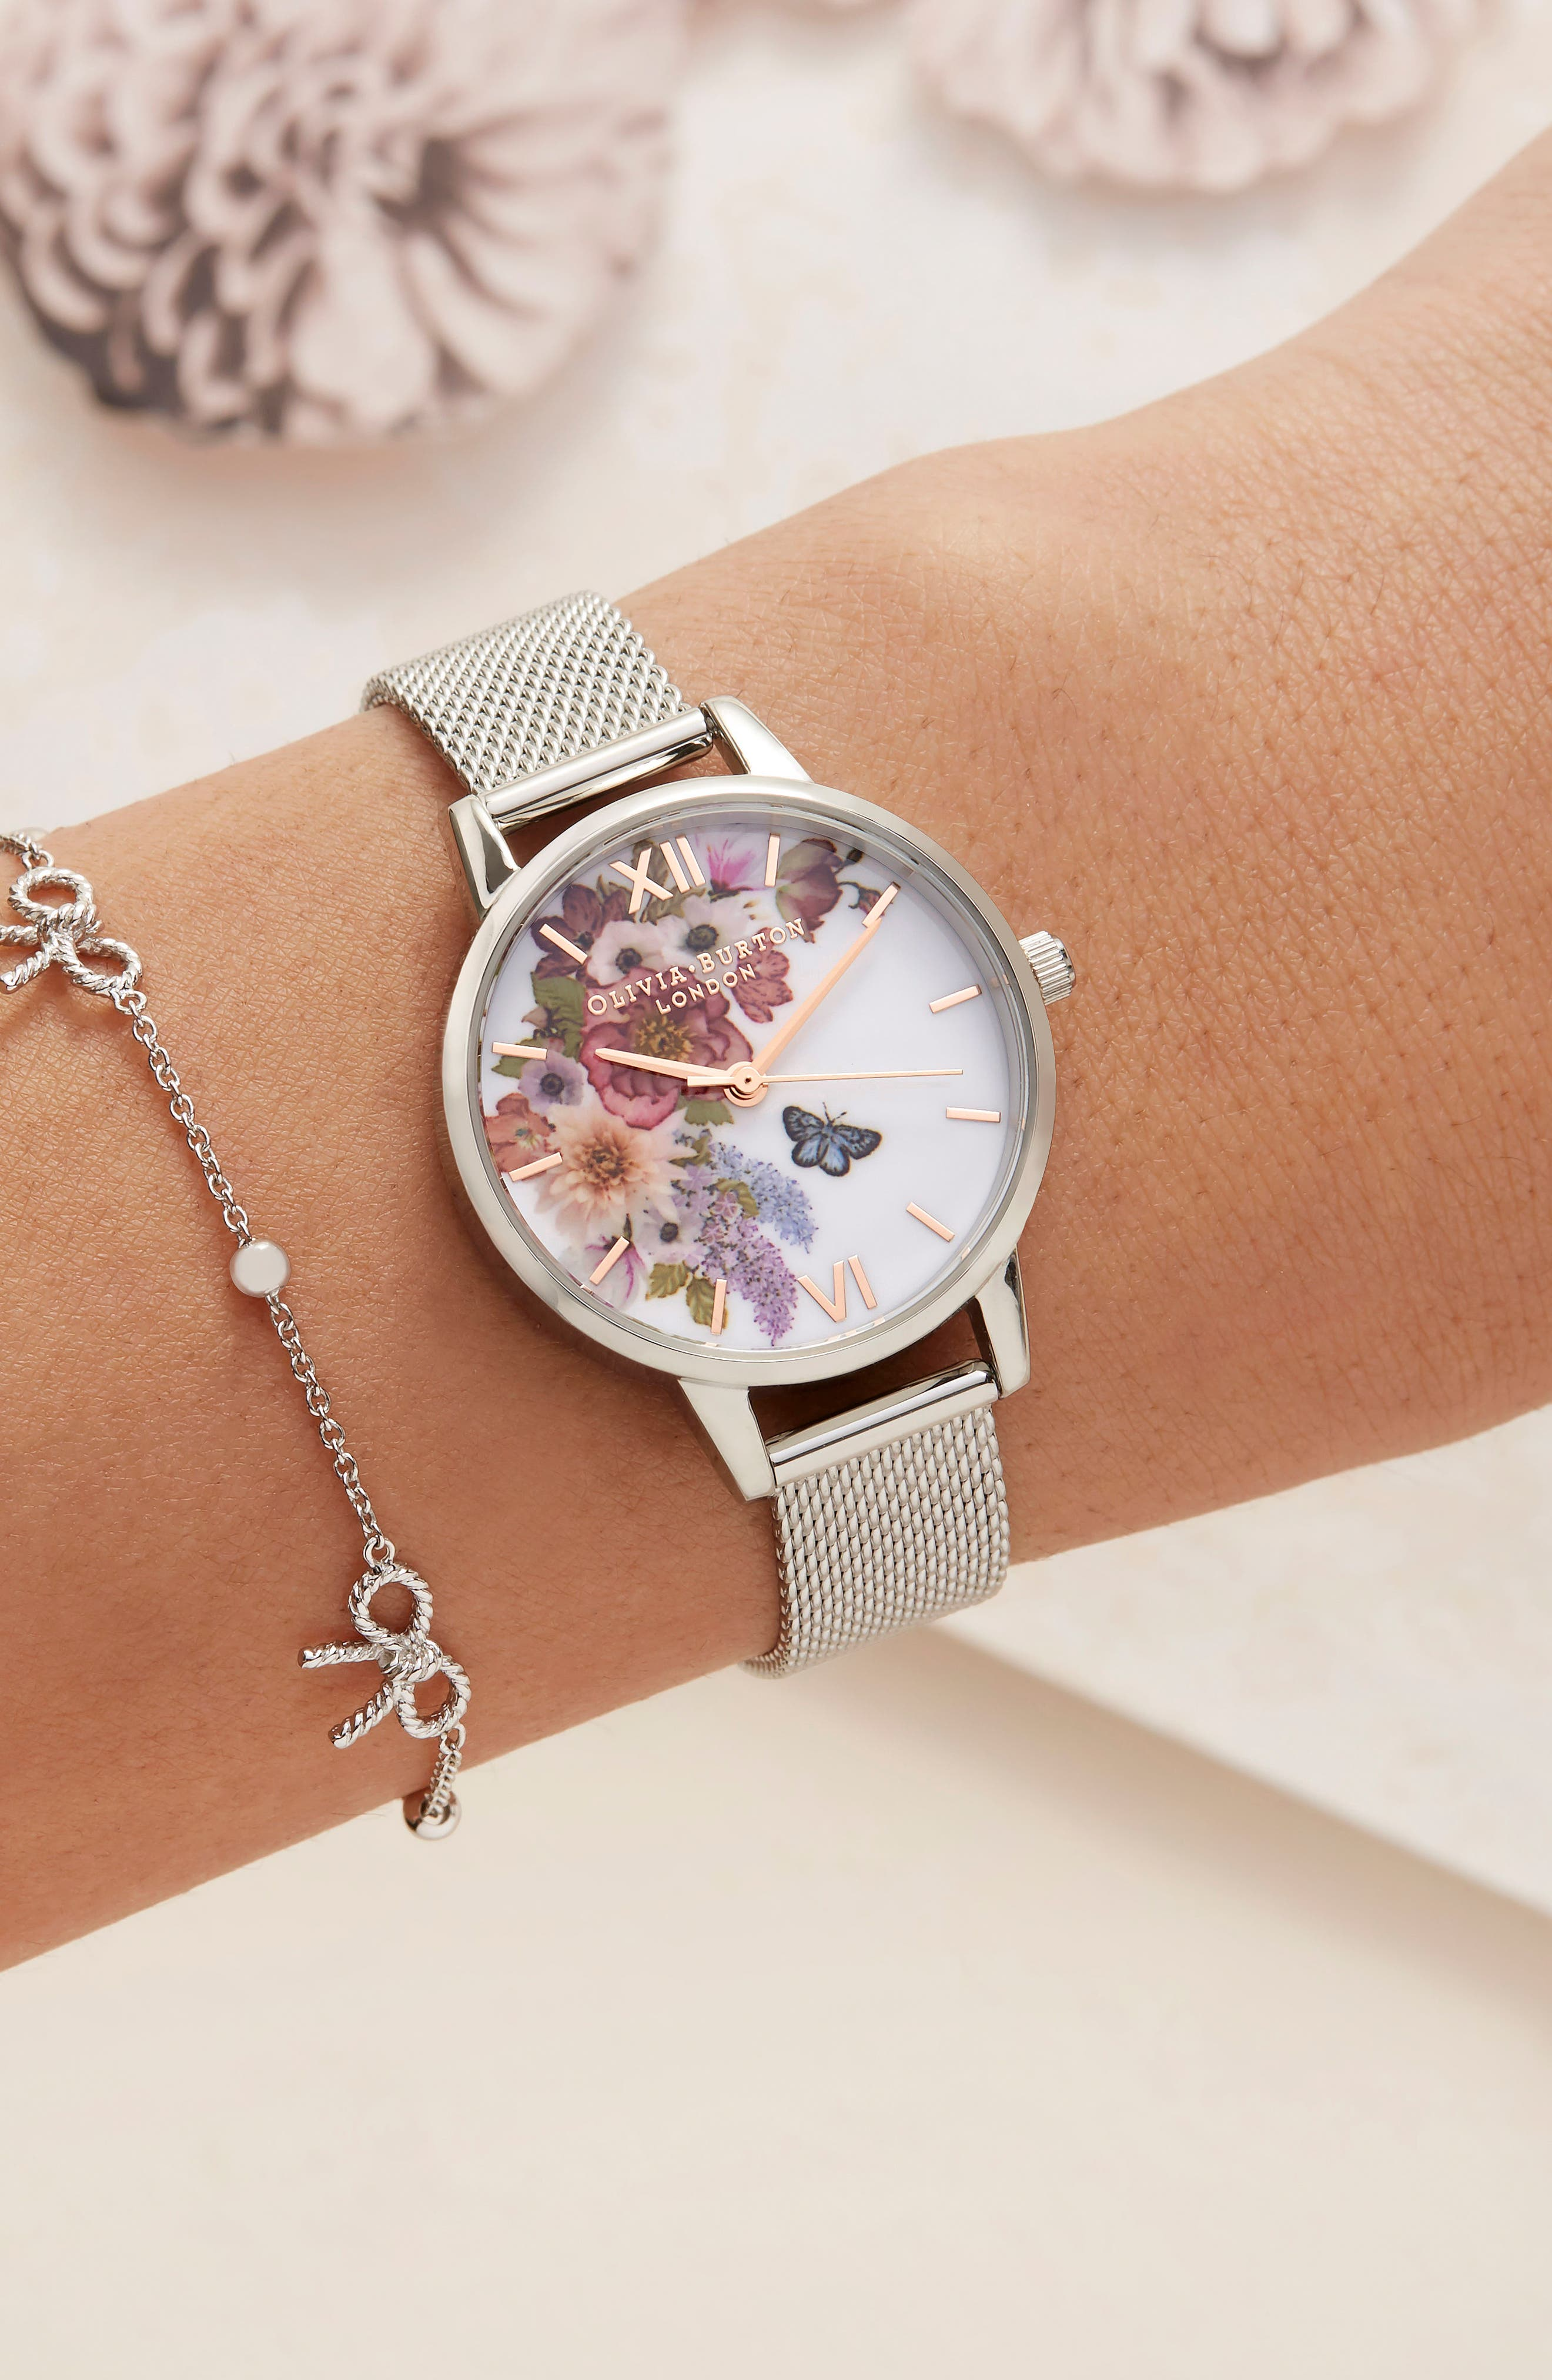 Enchanted Garden Mesh Strap Watch, 30mm,                             Alternate thumbnail 6, color,                             SILVER/ FLORAL/ ROSE GOLD